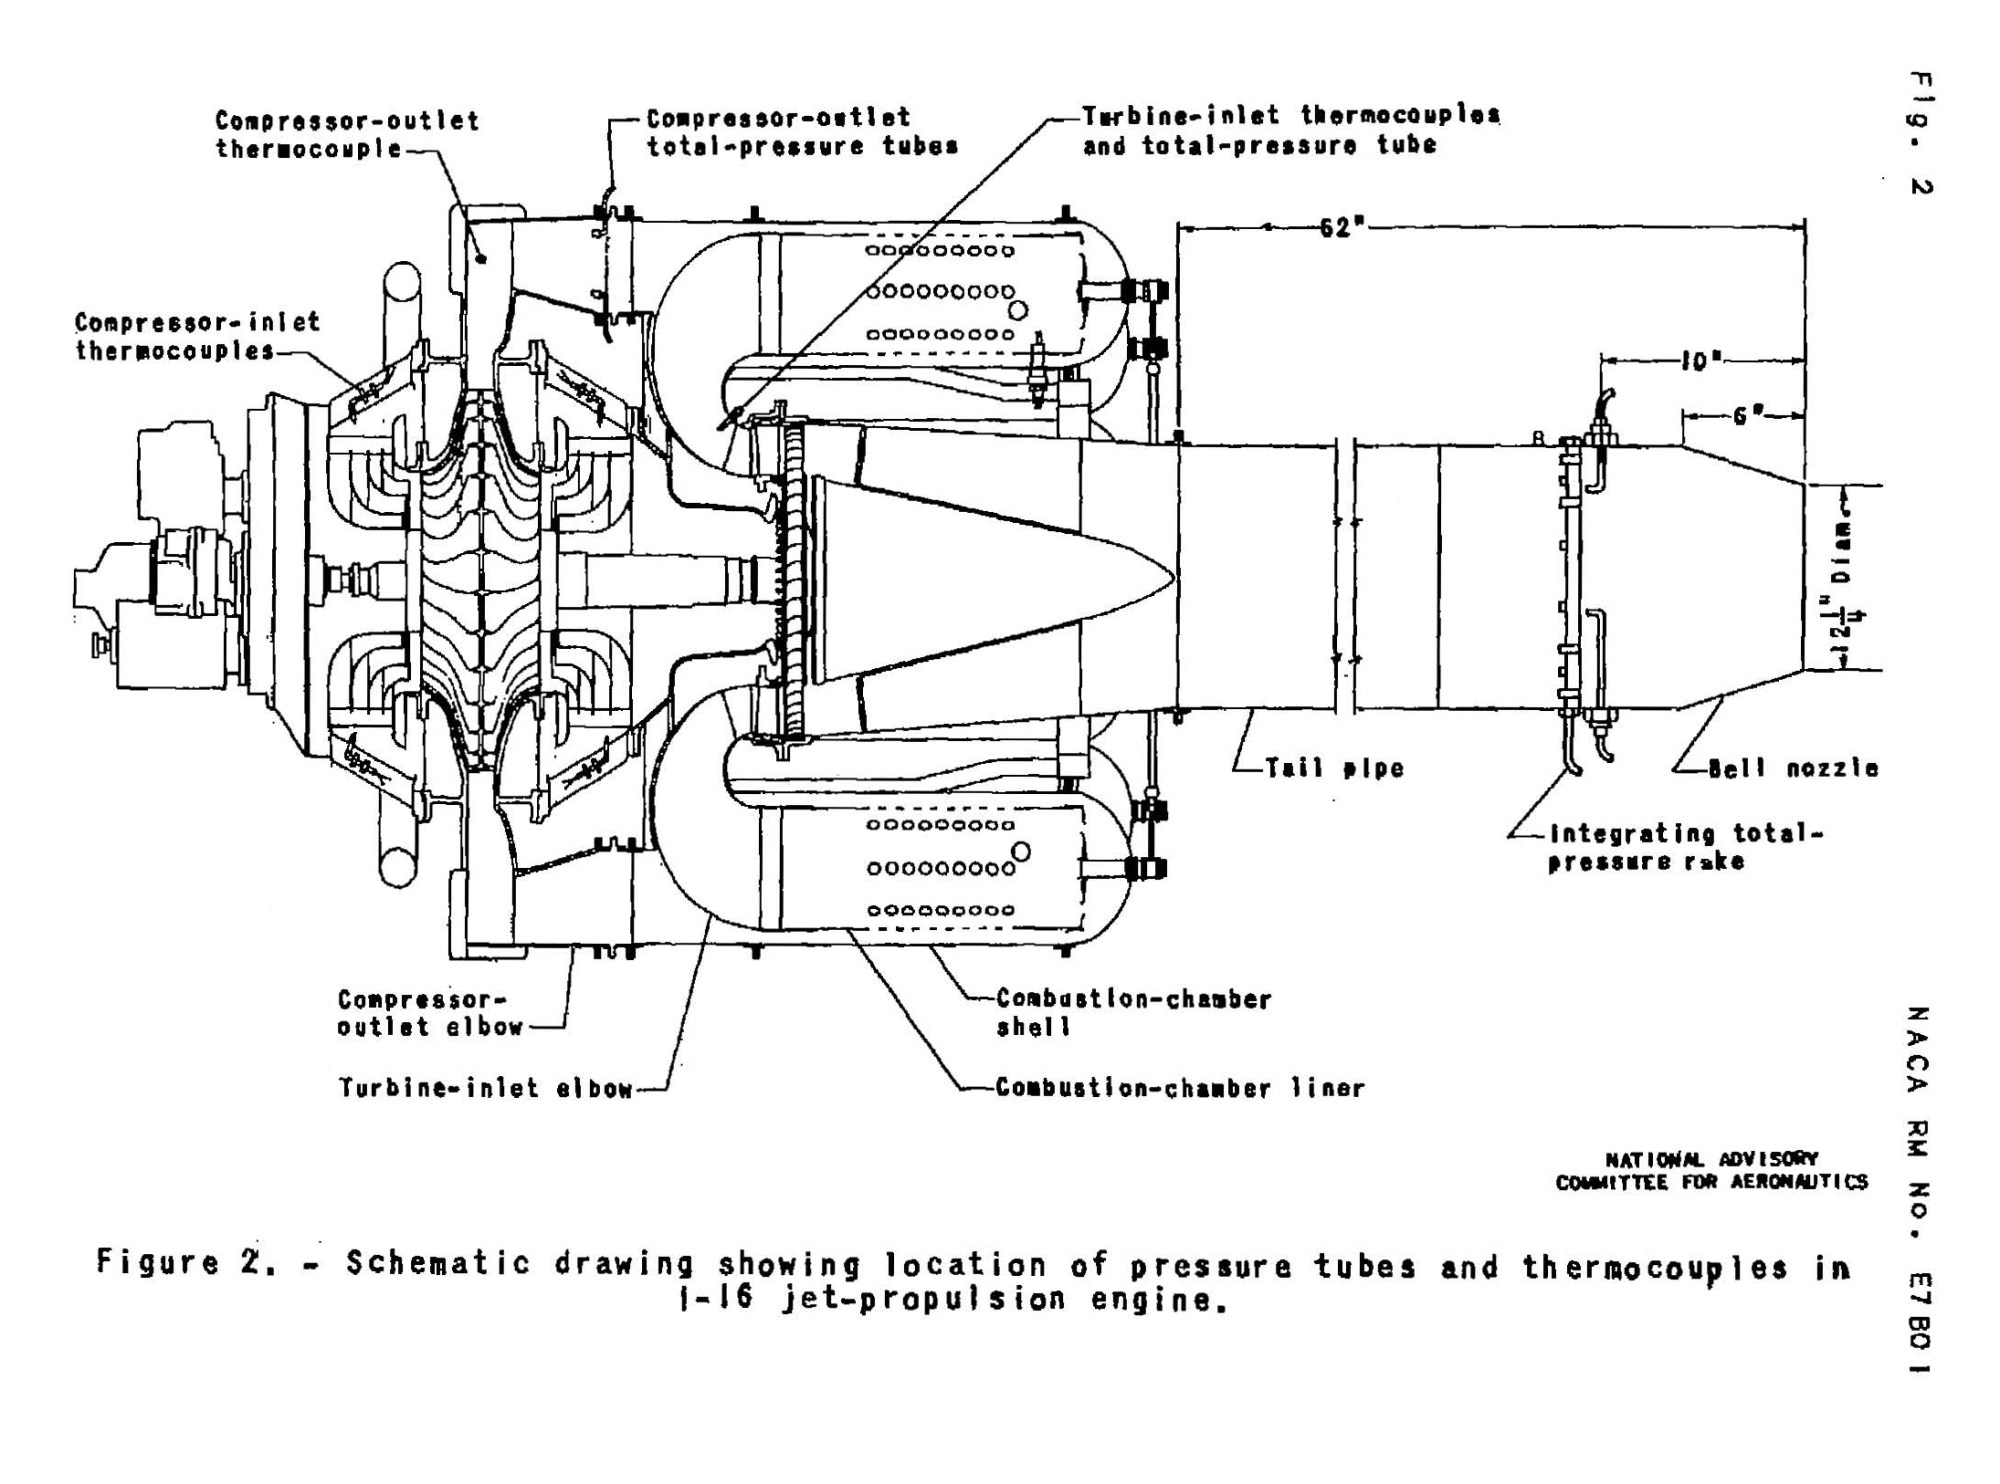 hight resolution of naca diagram of the general electric i 16 j 31 engine